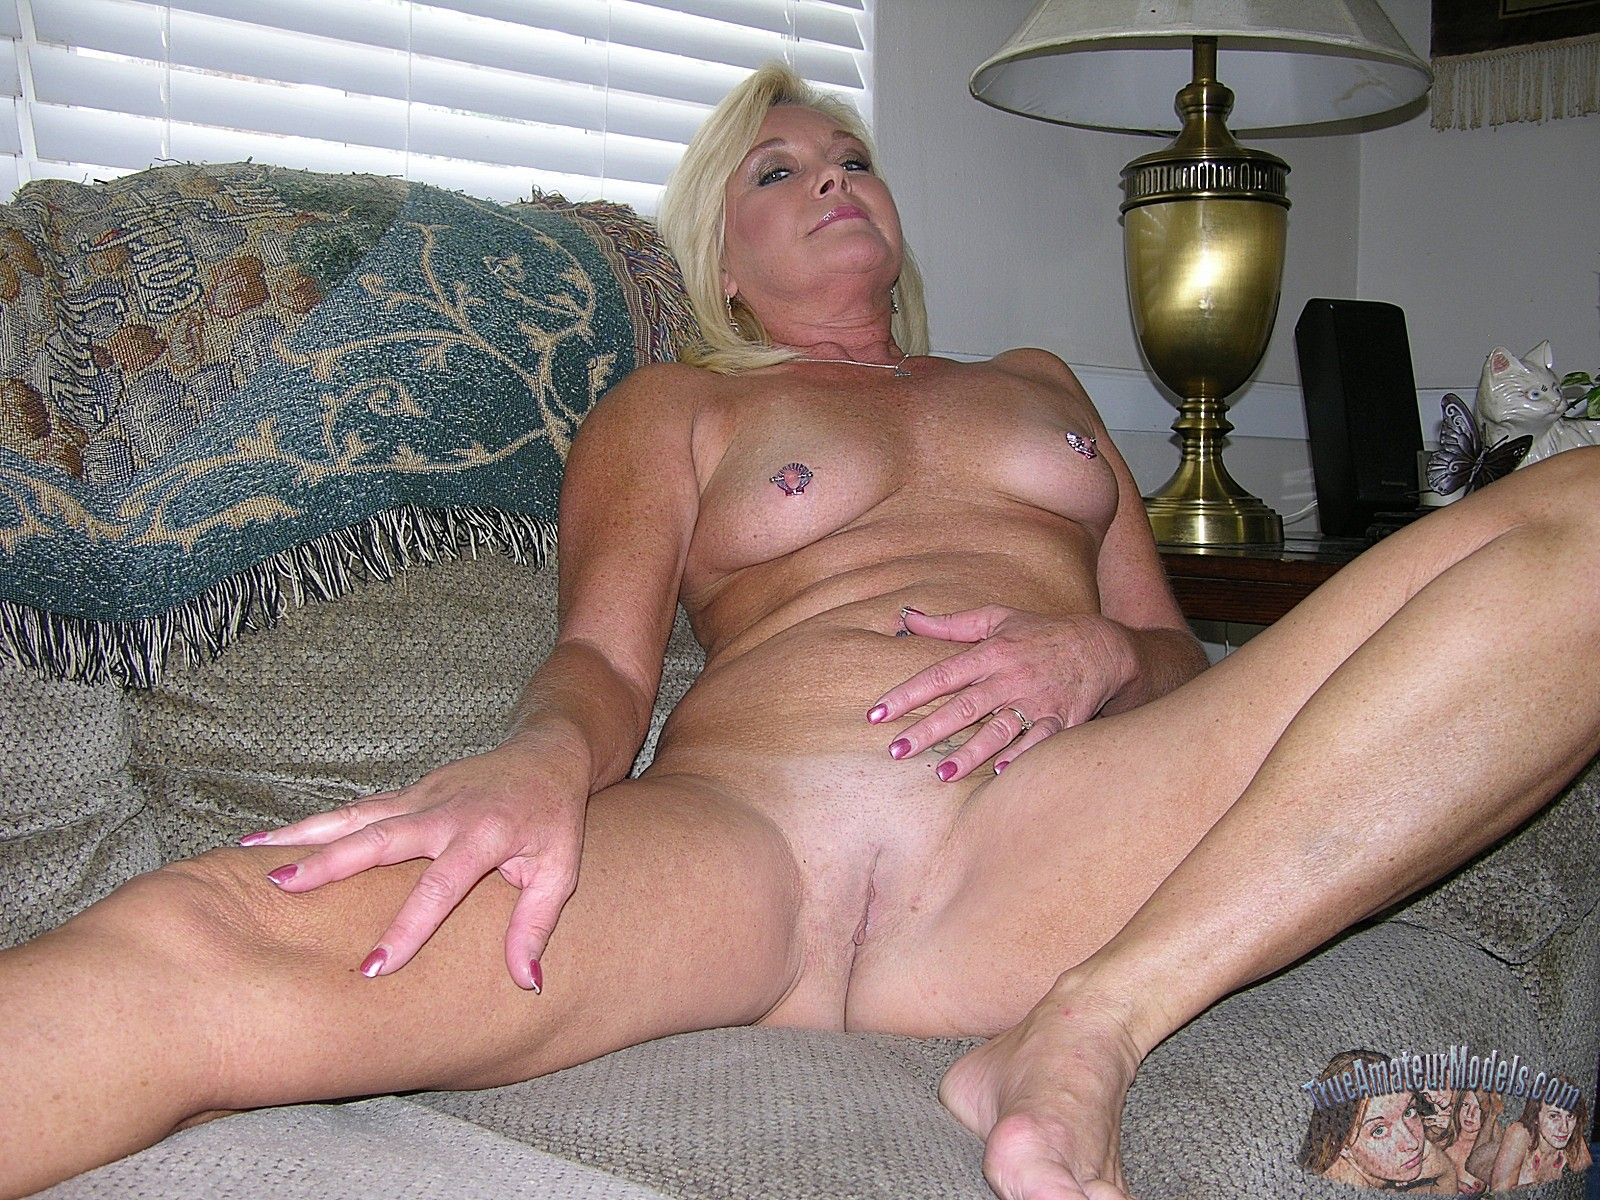 Big boob milfs on boy